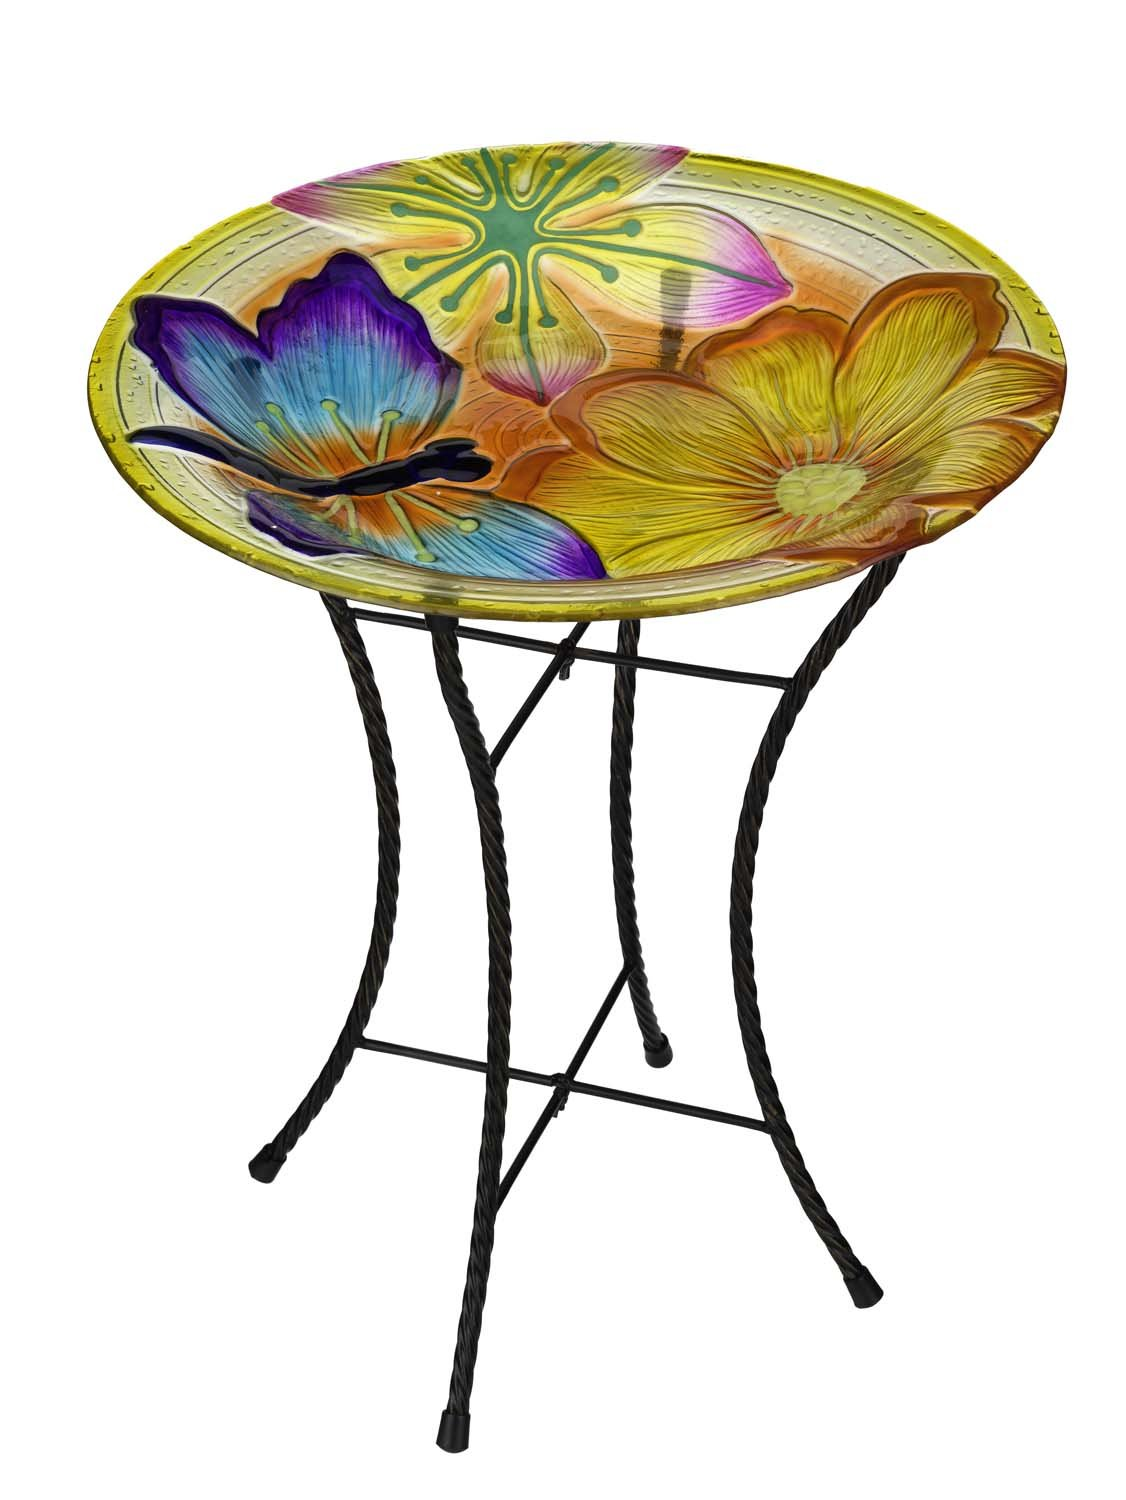 Regal Art & Gift Dragonfly Glow Birdbath, 18''